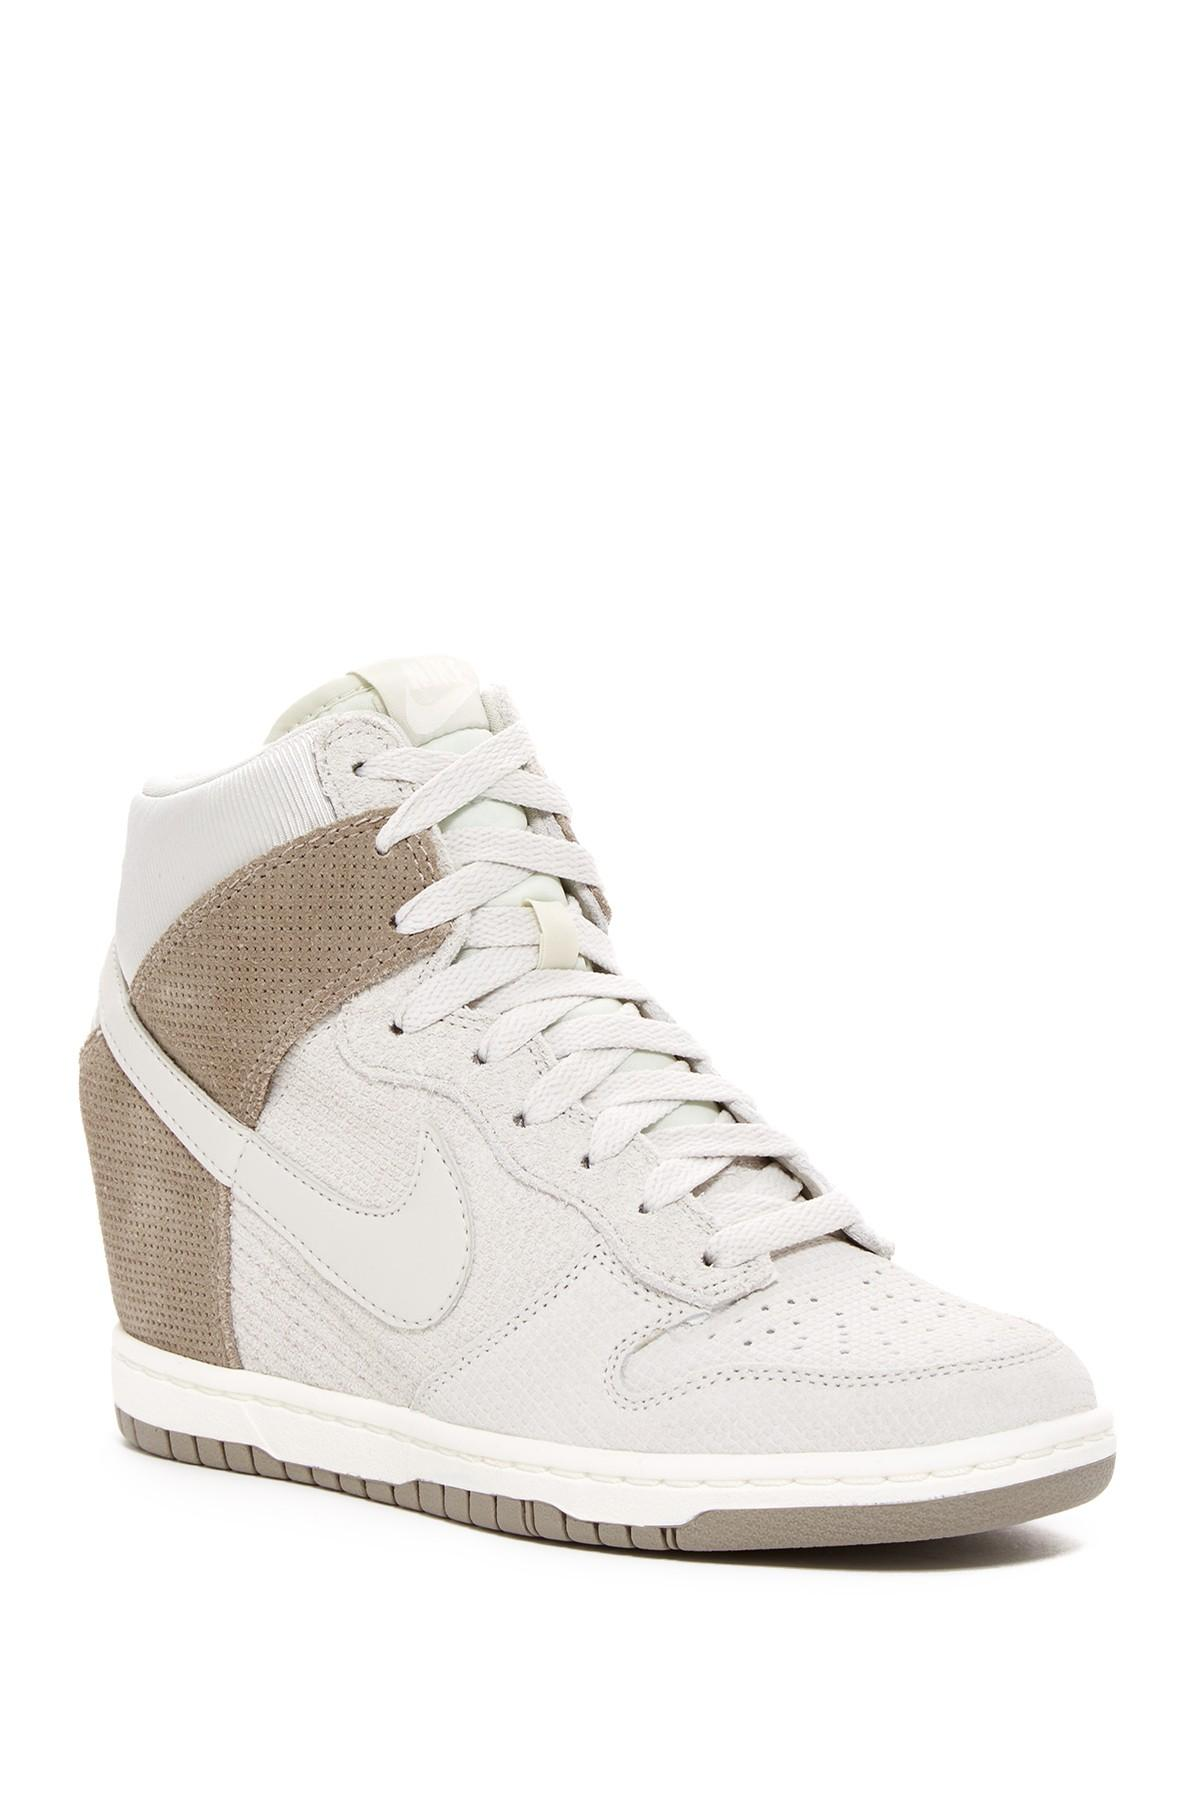 7f0189014c62 Gallery. Previously sold at  Nordstrom Rack · Women s Wedge Sneakers  Women s Nike Dunk Women s Nike Dunk Sky Hi ...